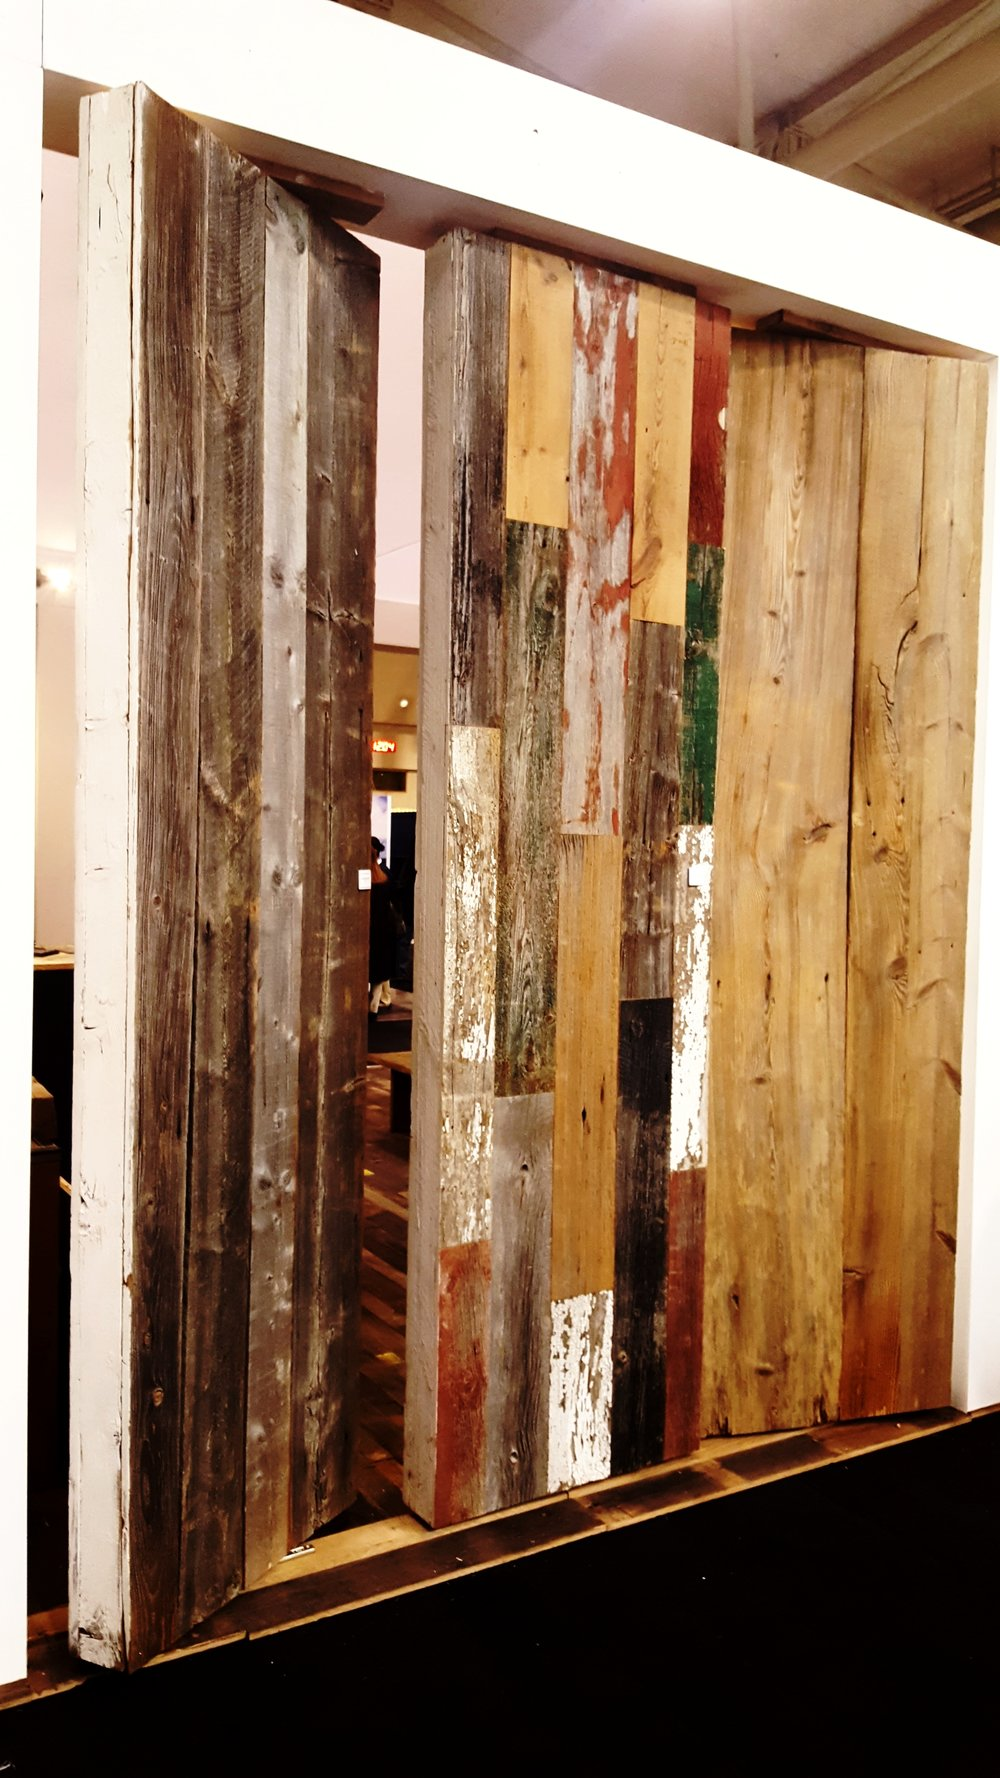 They're still showing one of my favourites - rustic antique plank wood!